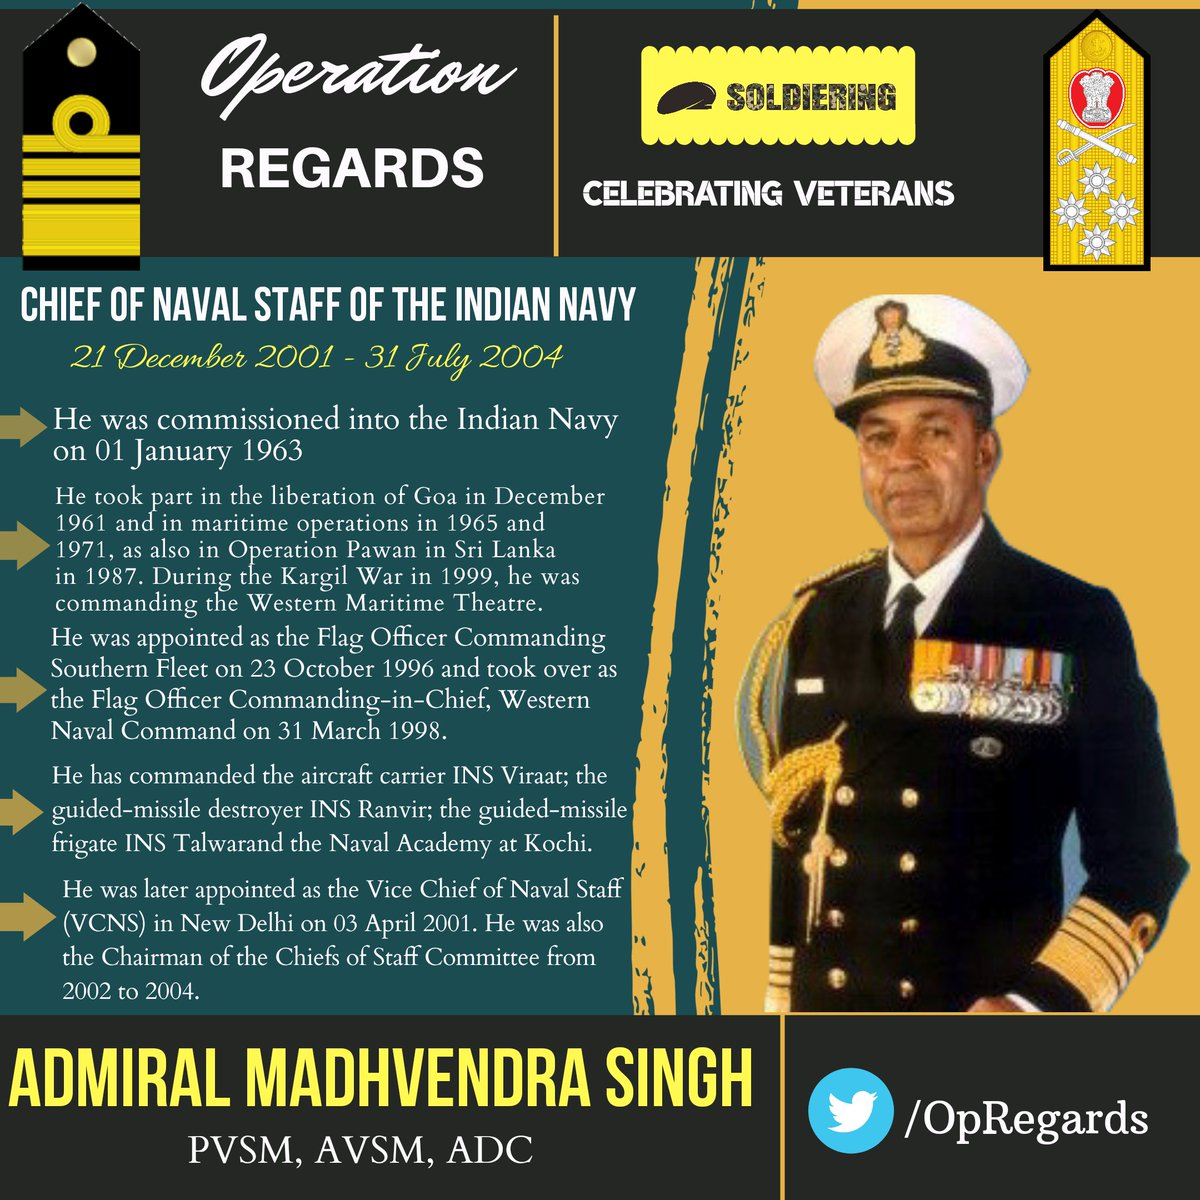 #OpRegards  We are celebrating #navy veteran Admiral Madhvendra Singh who served as CNS of the #IndianNavy. After his retirement, he has taken up the role of an #entrepreneur. He turned his ancestral heritage house into the Devi Niketan Heritage Hotel in #Jaipur. Thank you!<br>http://pic.twitter.com/YSZedIp9uG